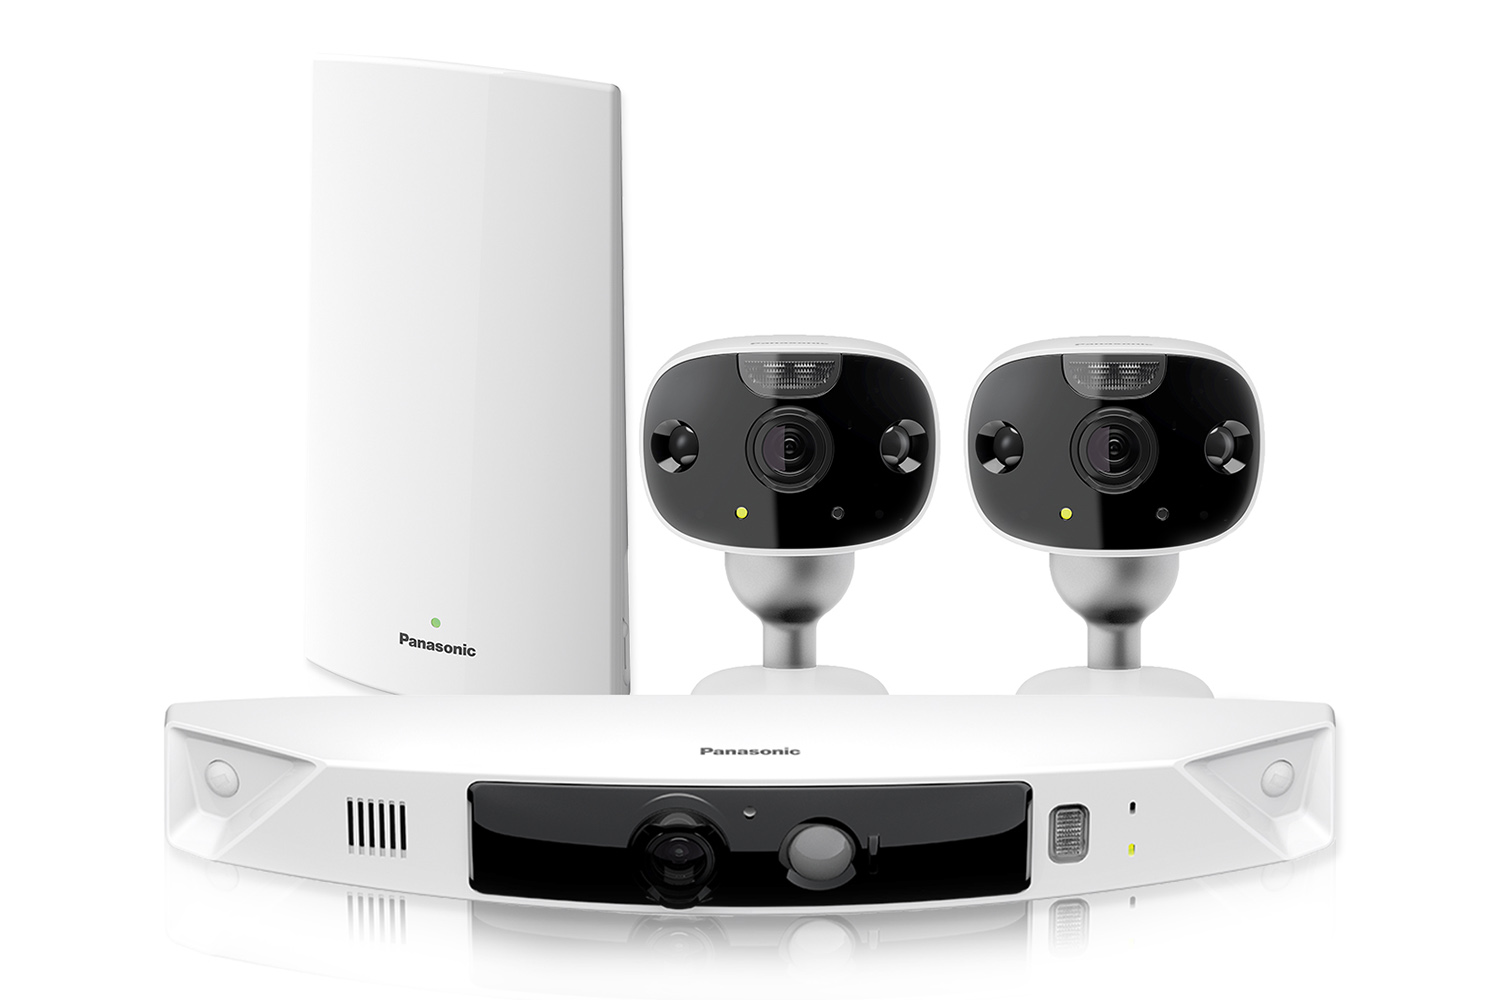 6 Reasons the Panasonic HomeHawk is the Ultimate Home Security System